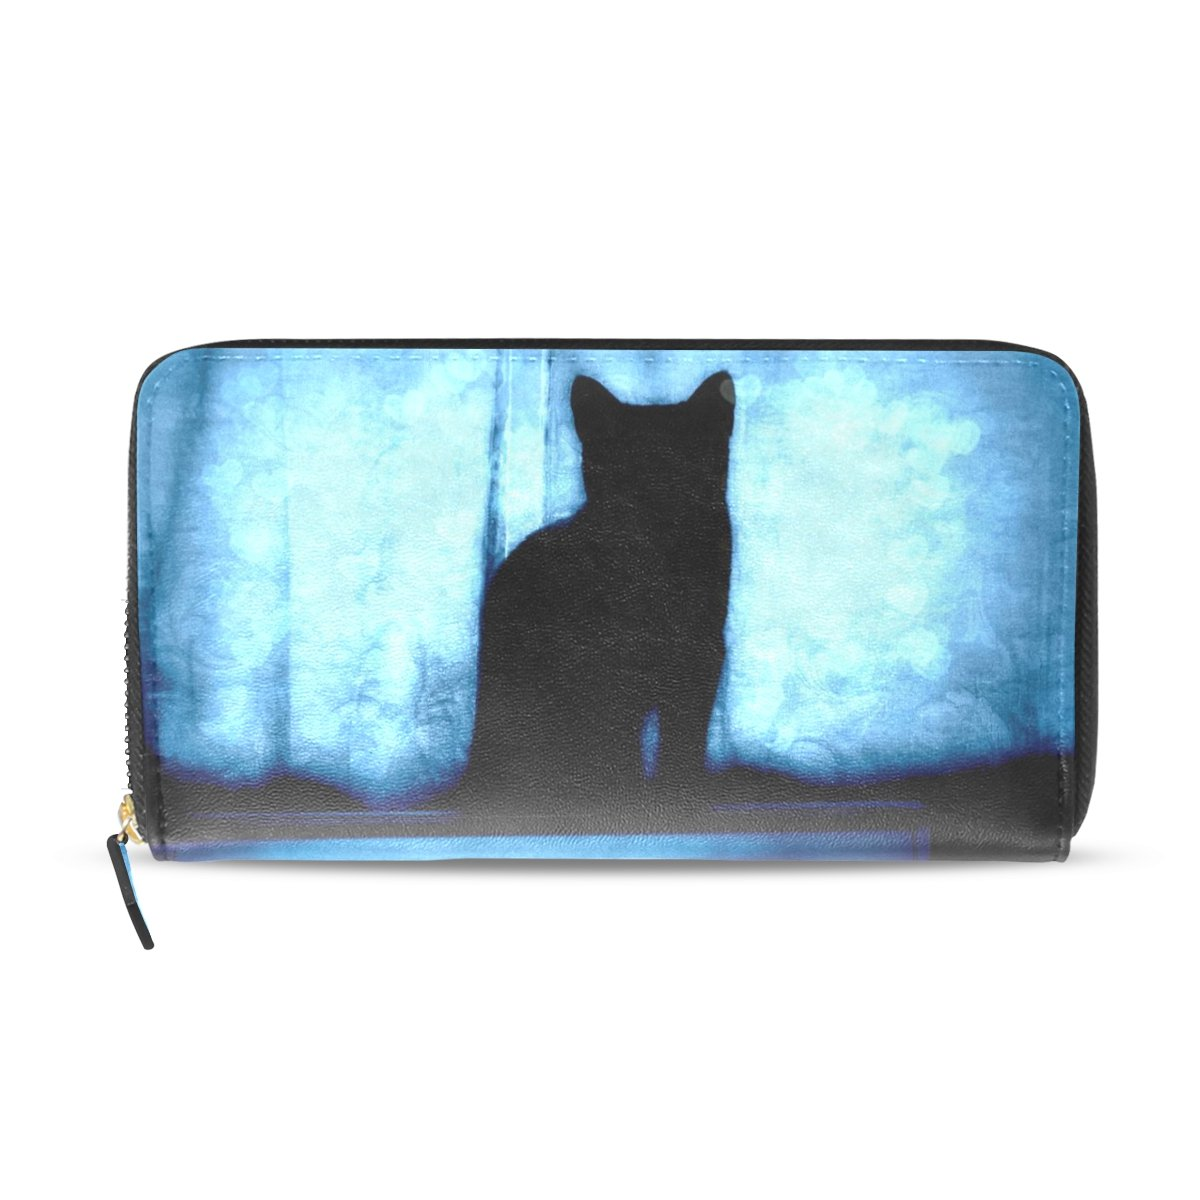 ABLINK Cat Shadow Under The Blue Curtain Women's printing Wallet Cell Phone Zipper Around Long Purse